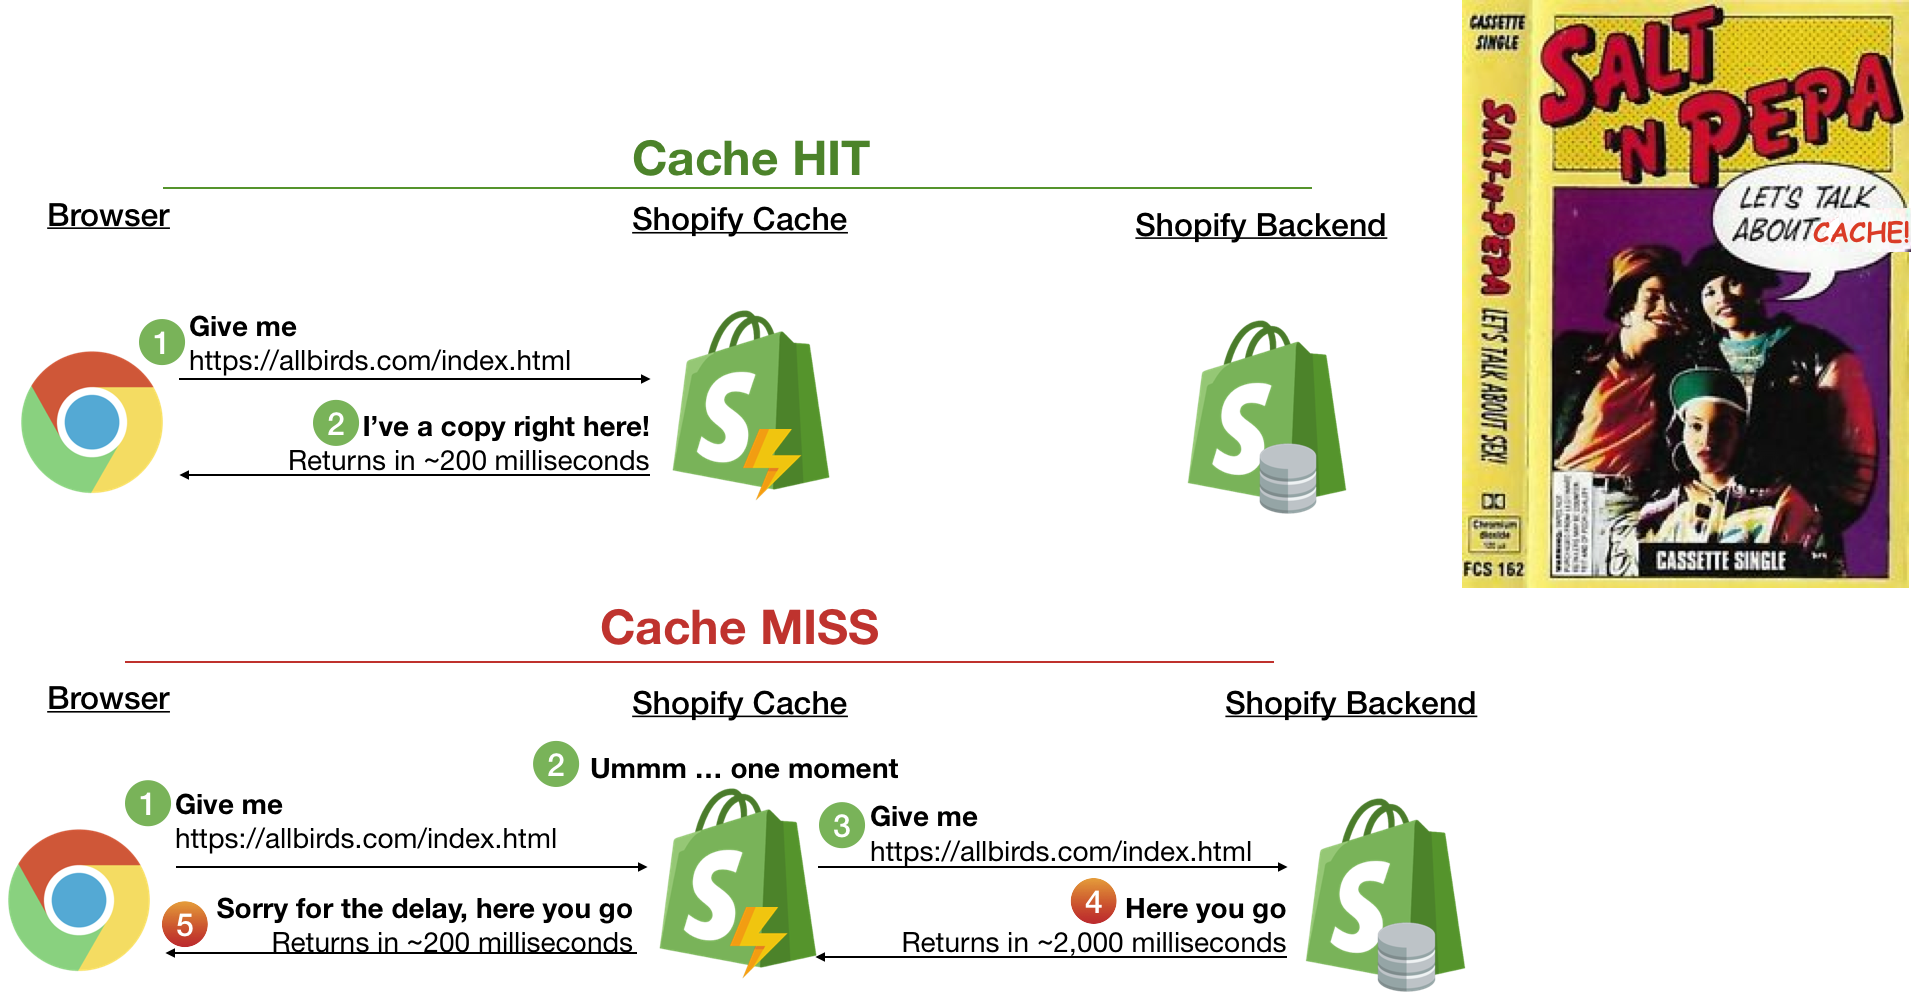 Cache HITS (fast responses) vs. Cache Misses (slow responses requiring the backend)